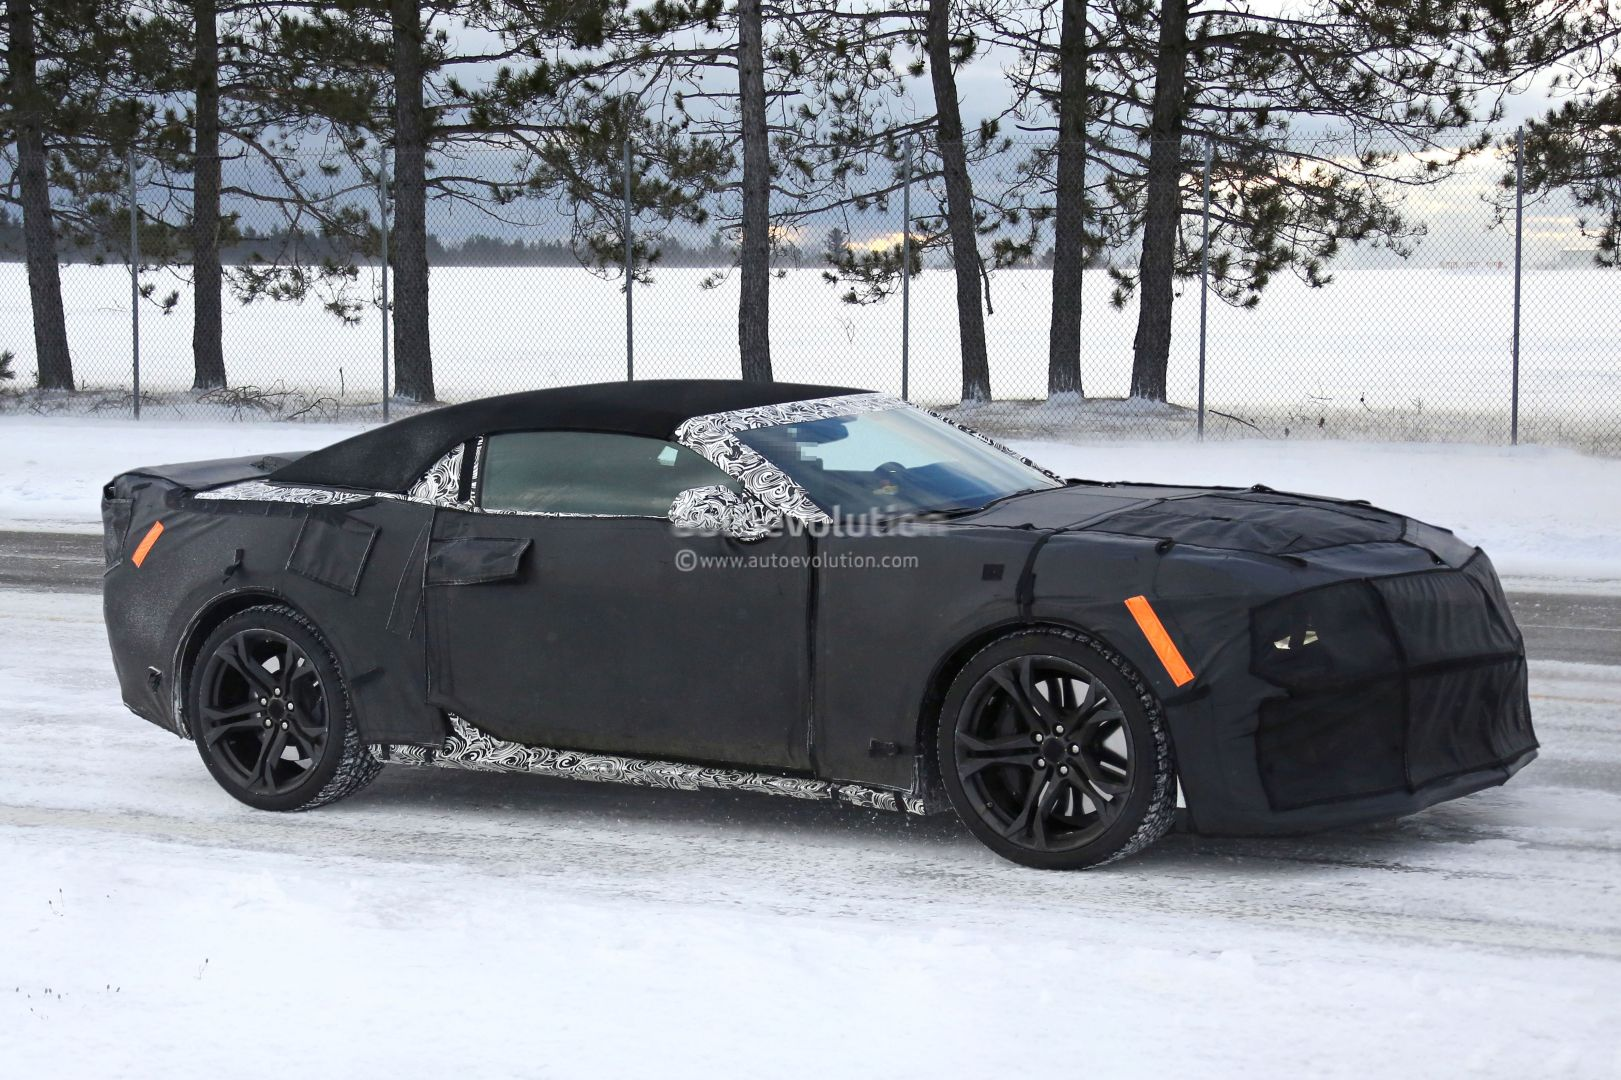 2017 Chevrolet Camaro Zl1 Convertible Spied Testing Its